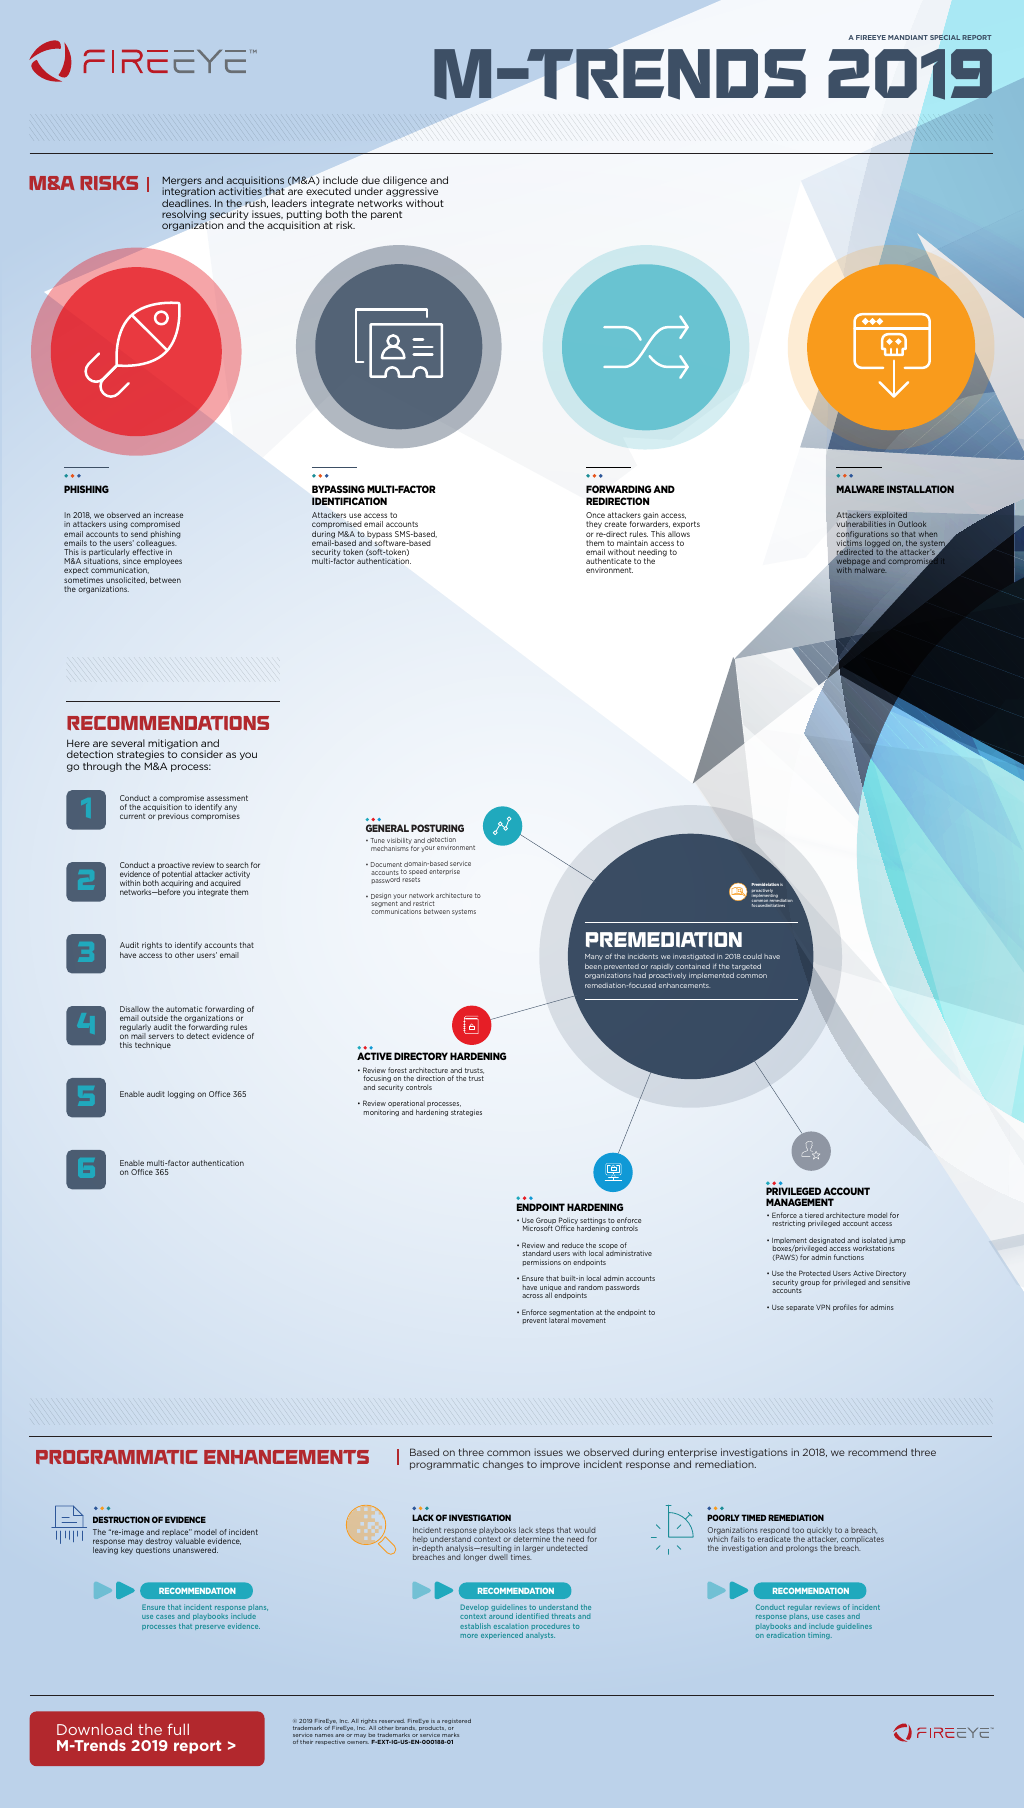 M-Trends 2019 Infographic : Part 2